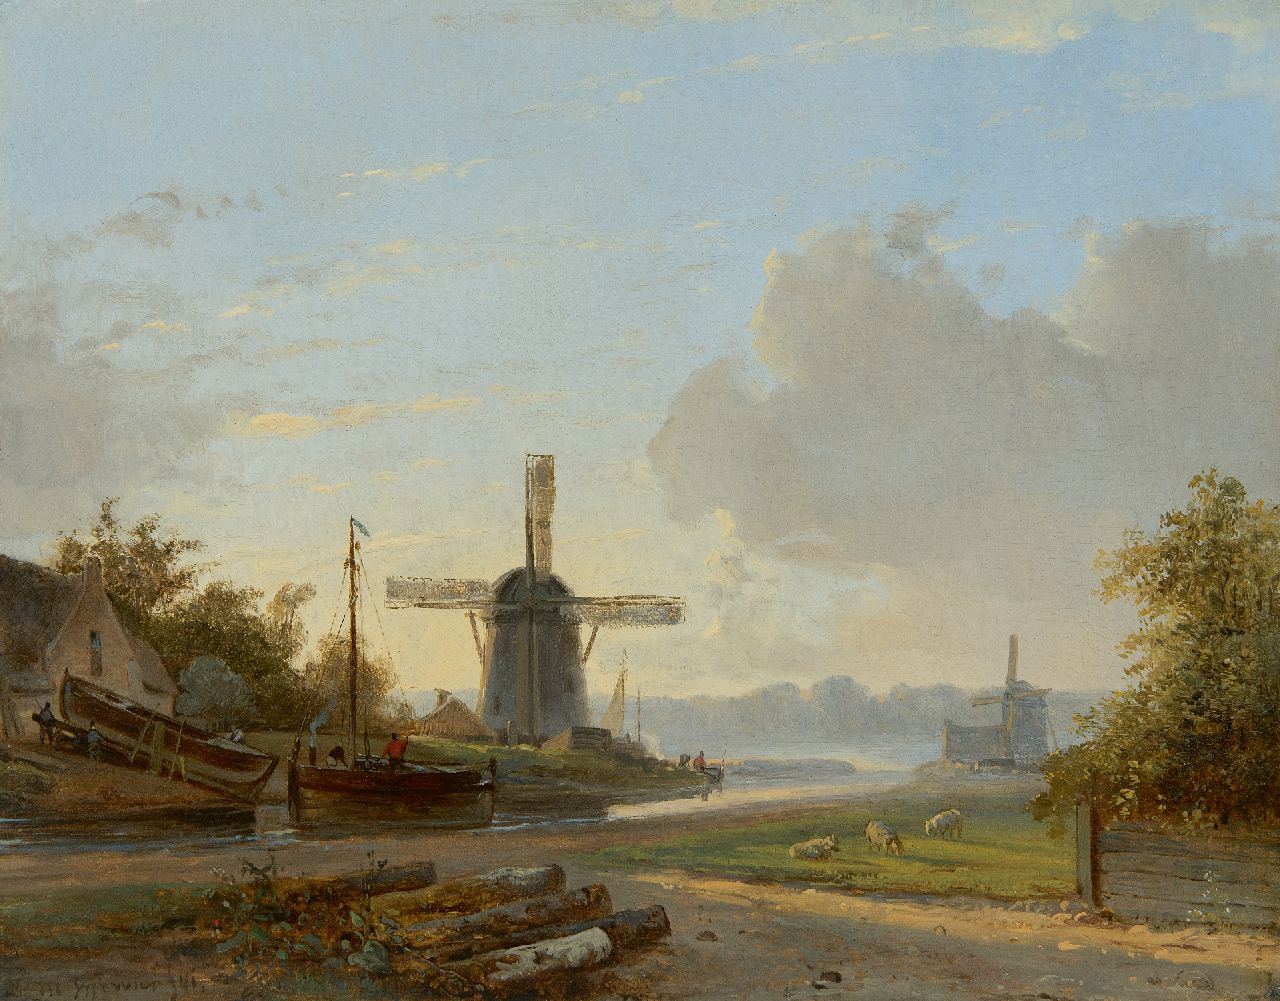 Petrus Marius Brouwer | River landscape with mills and shipyarsd, oil on panel, 25.7 x 32.5 cm, signed l.l. and dated '41